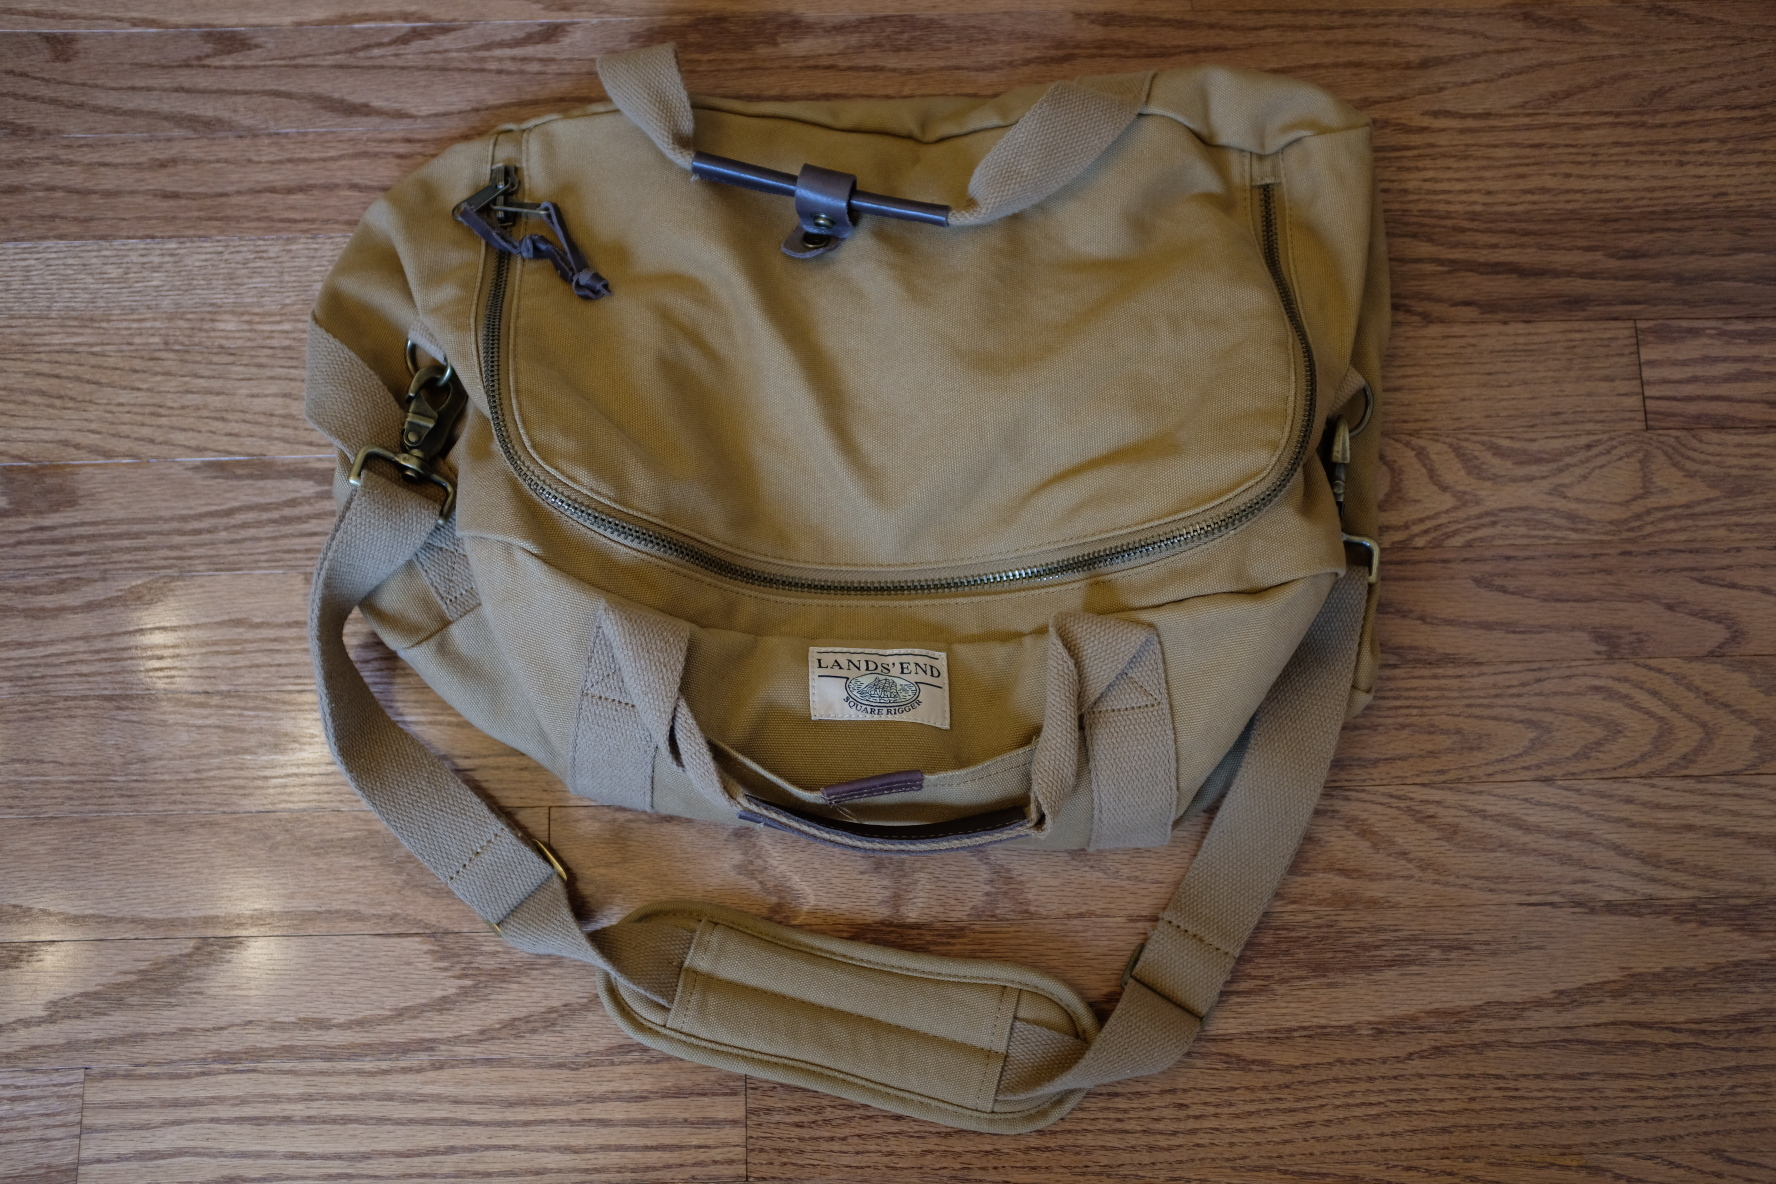 61a7e68a7ee Lands End Square Rigger Canvas Duffel, Good,  25 SOLD